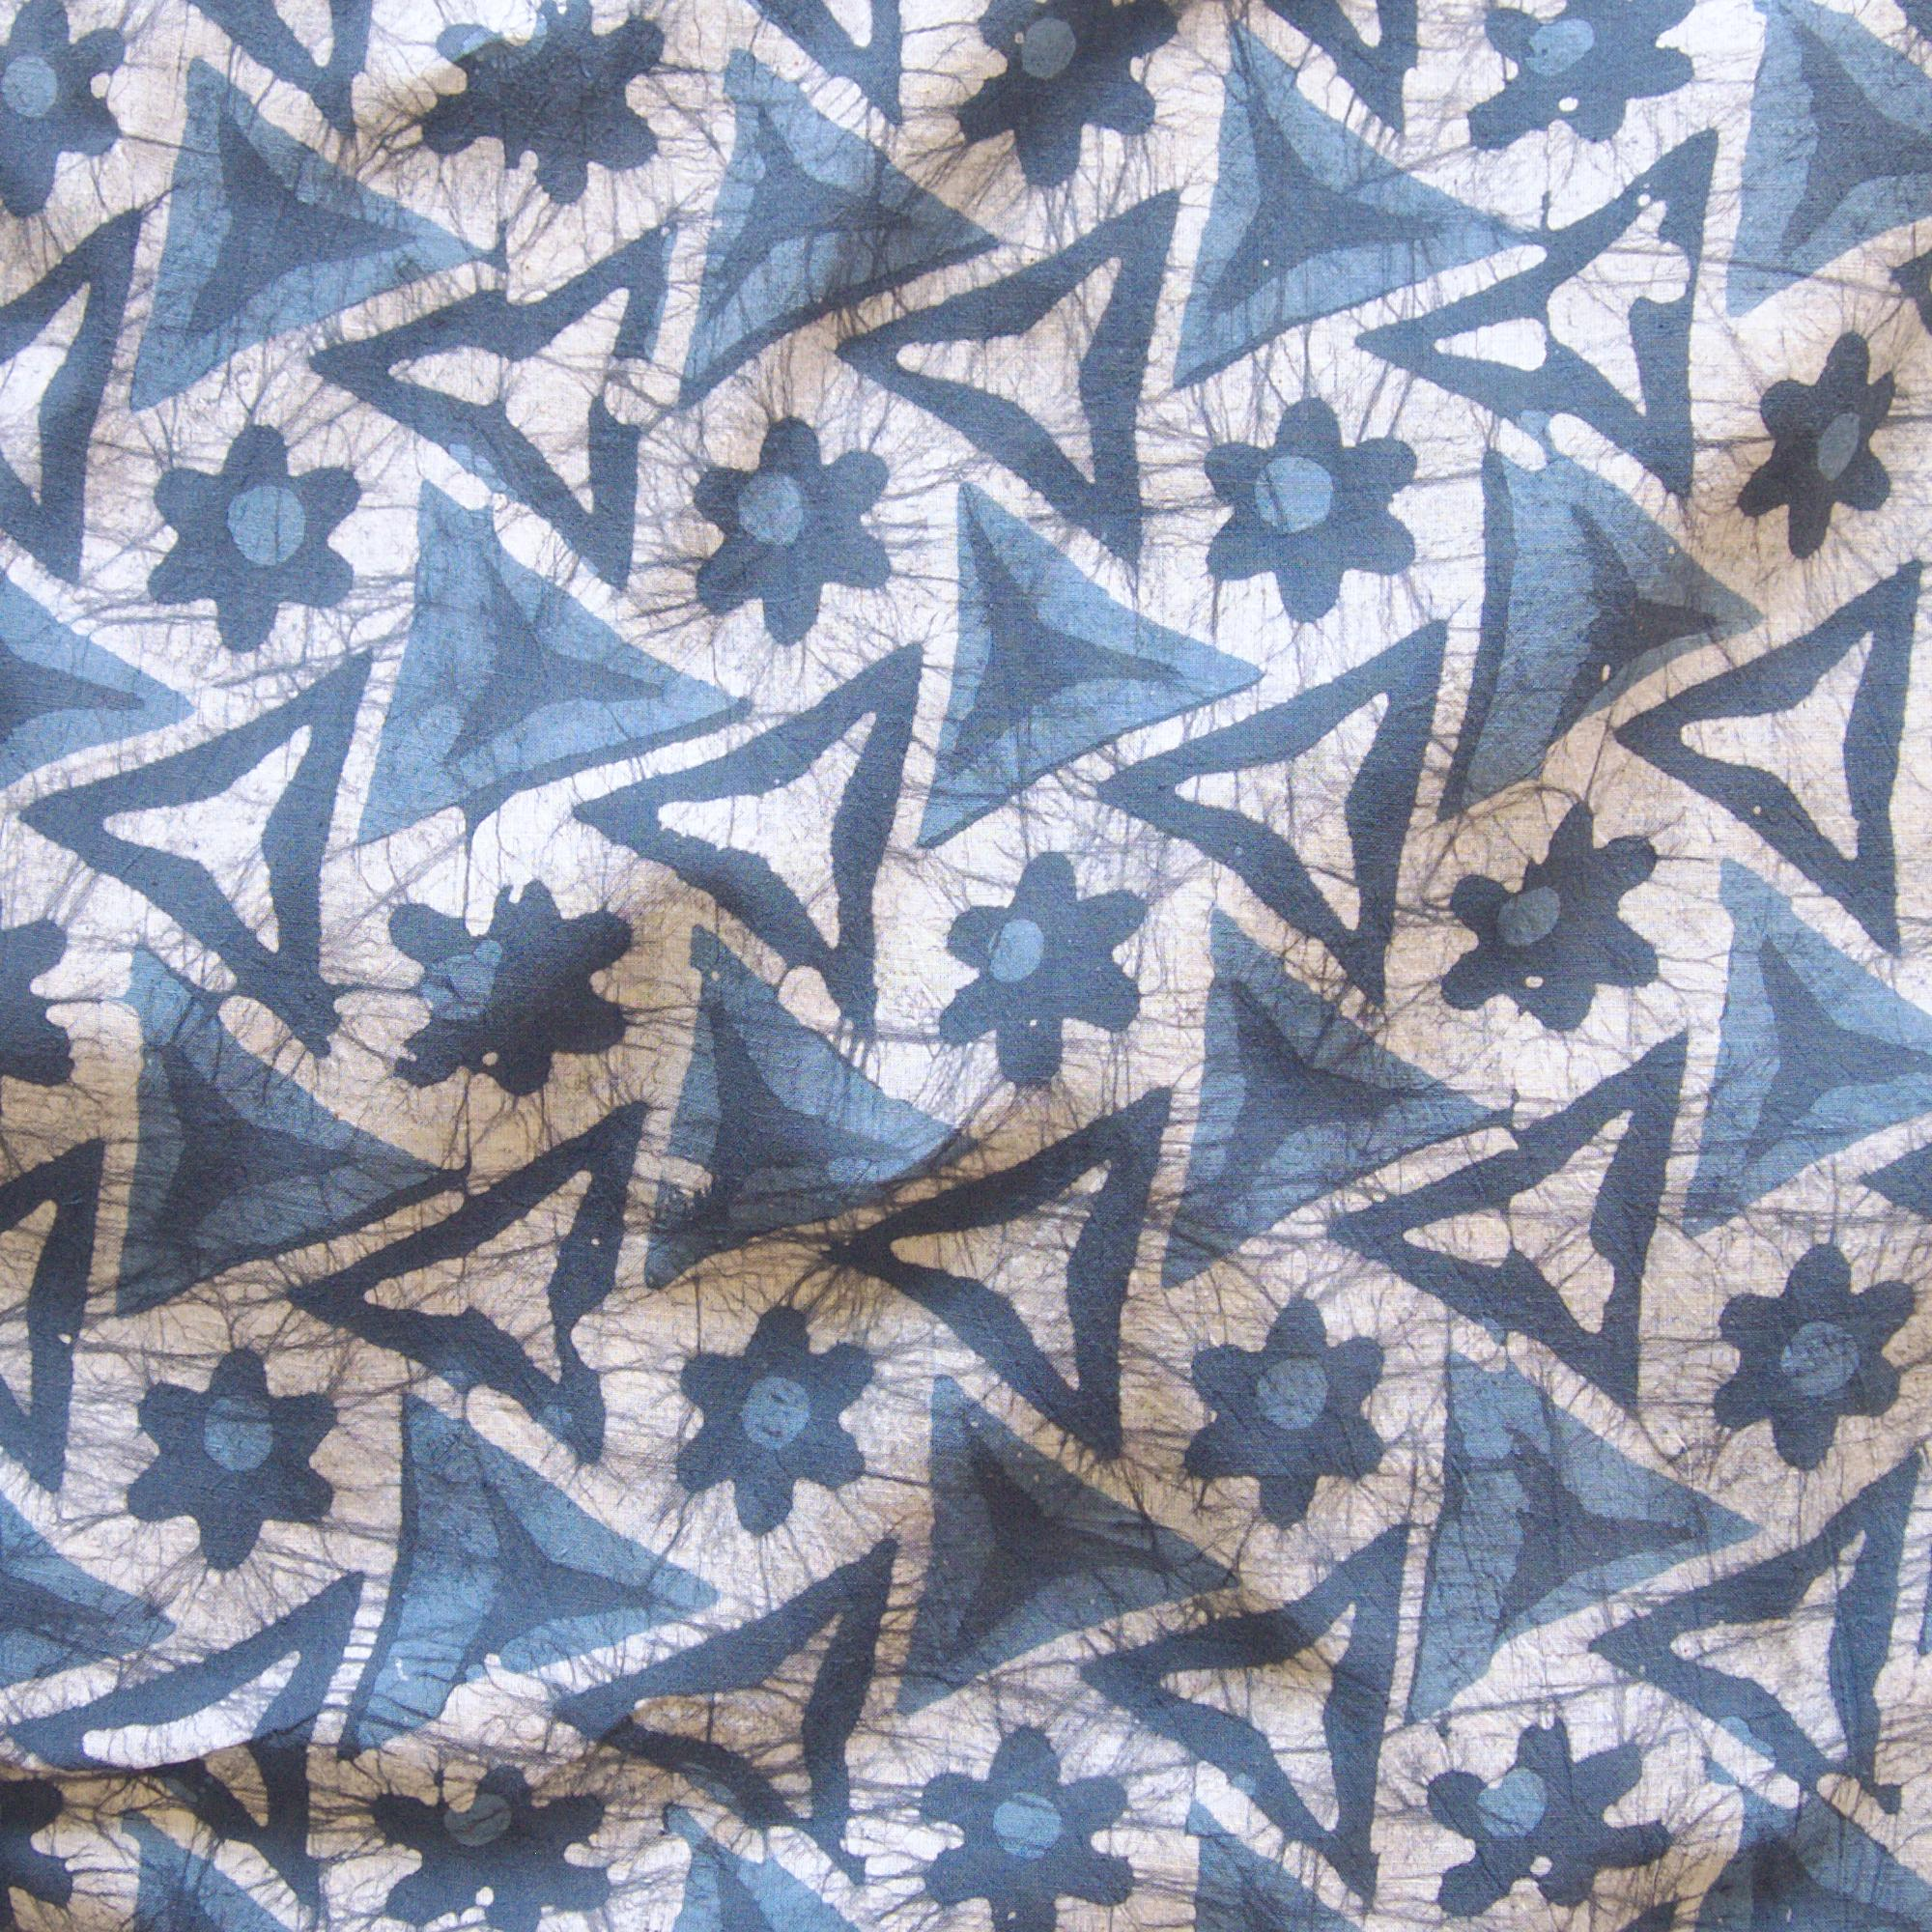 1 - SHA22 - 100% Block-Printed Batik Cotton Fabric From India - Tri Blade Motif - Contrast - Live